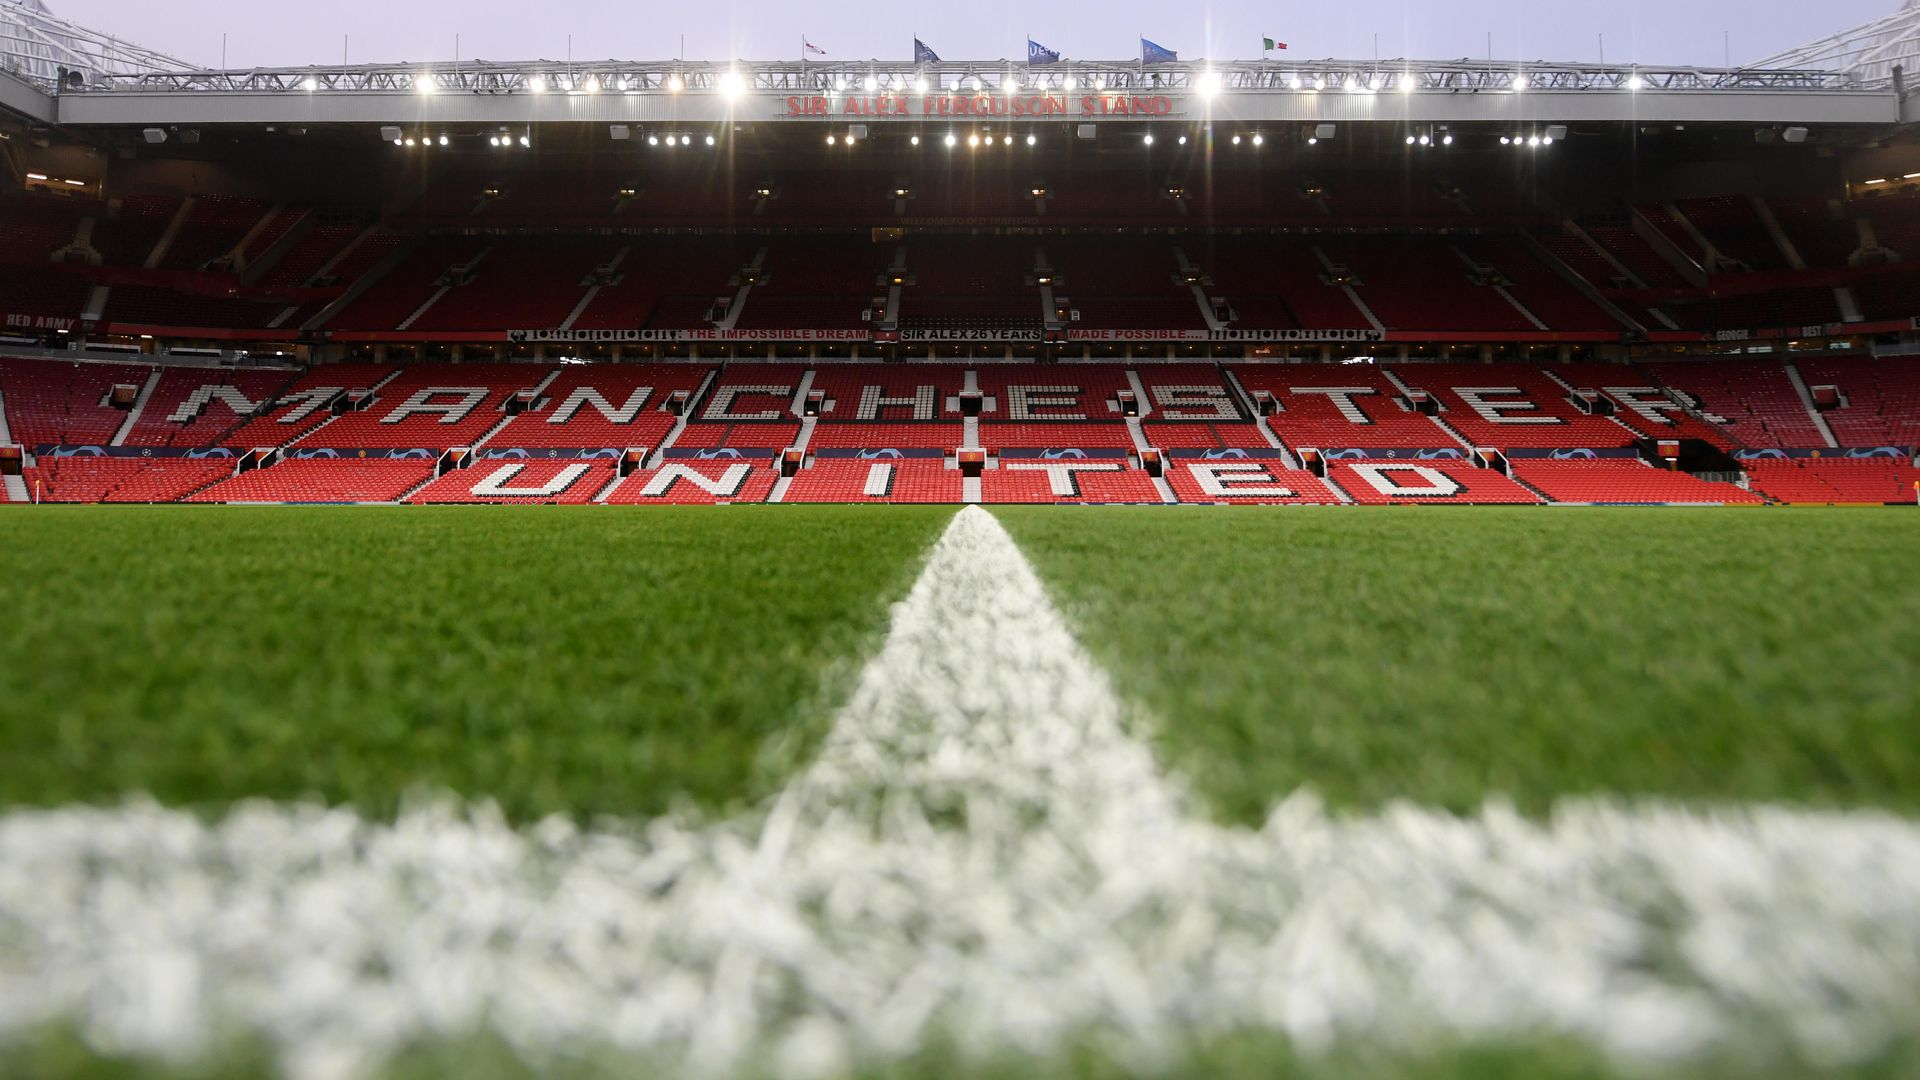 old trafford wallpaper hd posted by ethan walker https cutewallpaper org 21 old trafford wallpaper hd view page 21 html